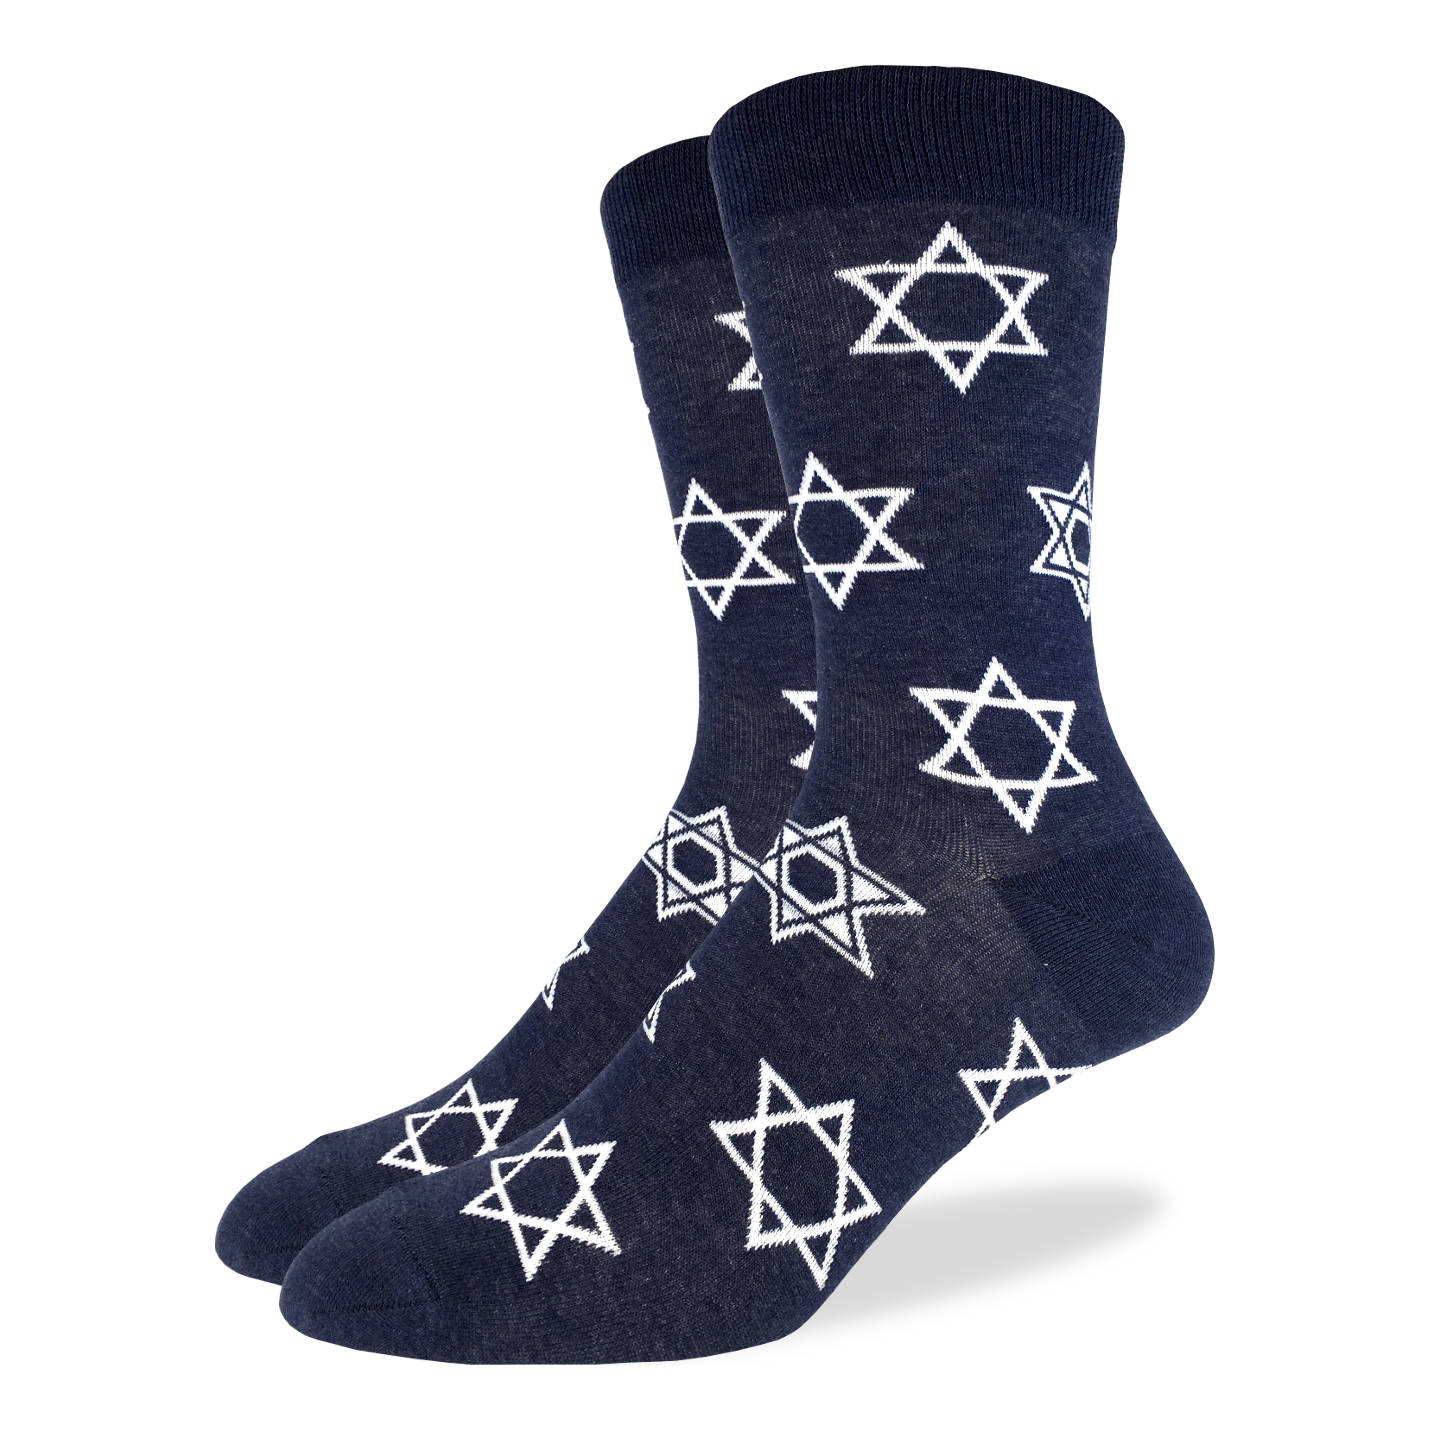 Men's Star of David Socks - Good Luck Sock